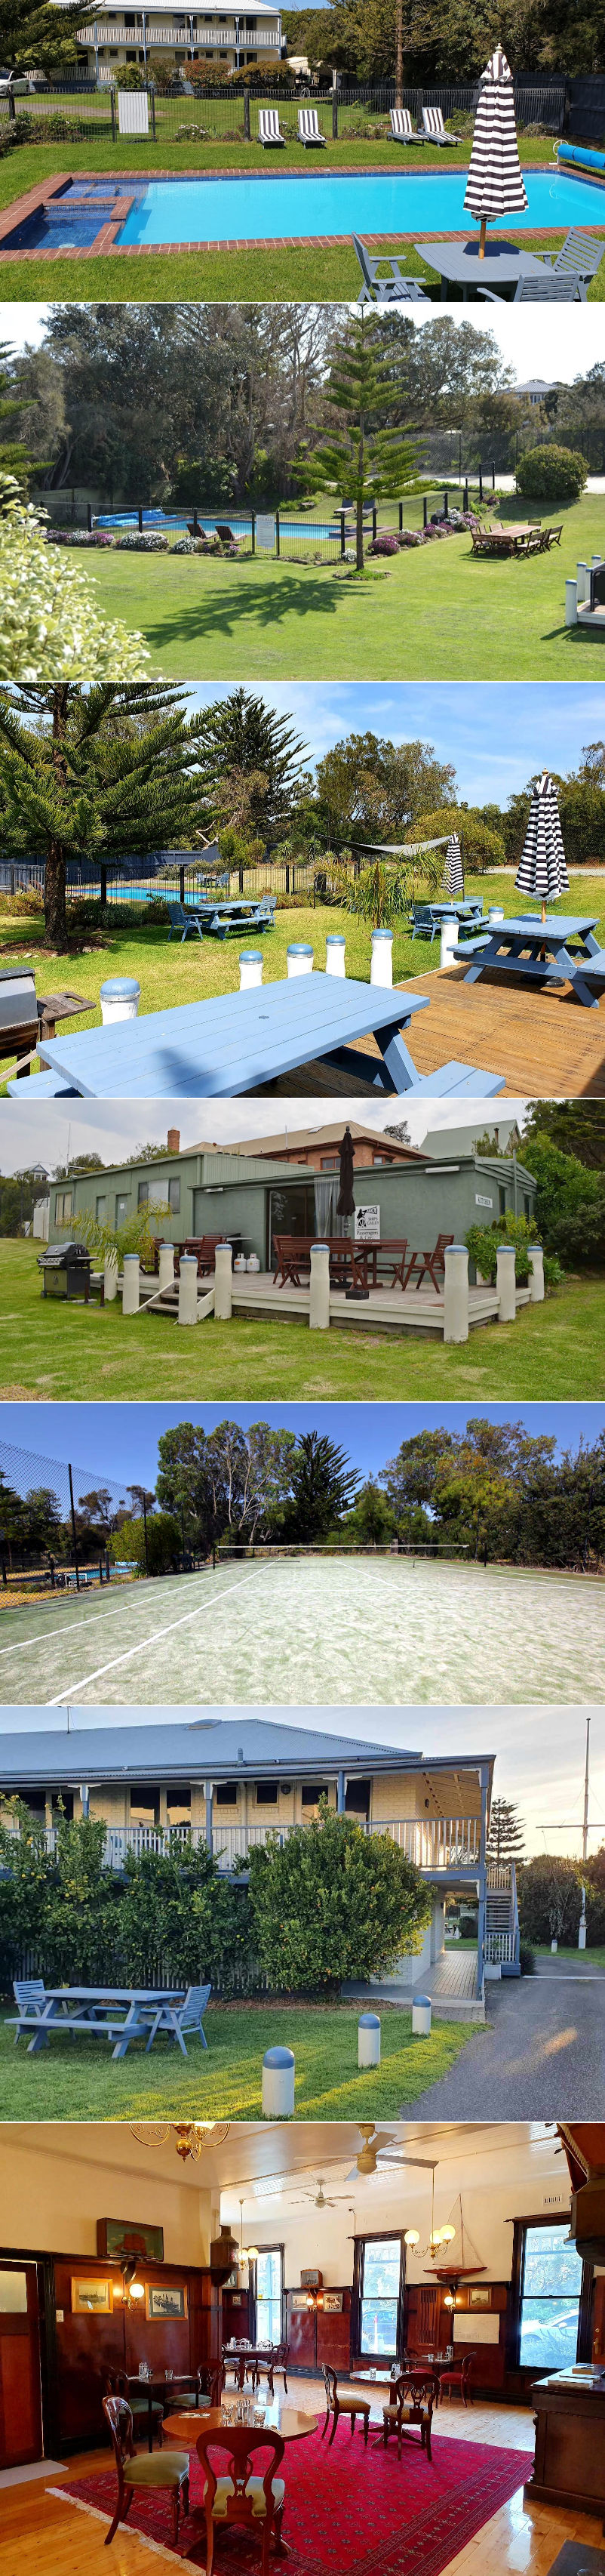 Point Lonsdale Guest House - The facilities and grounds